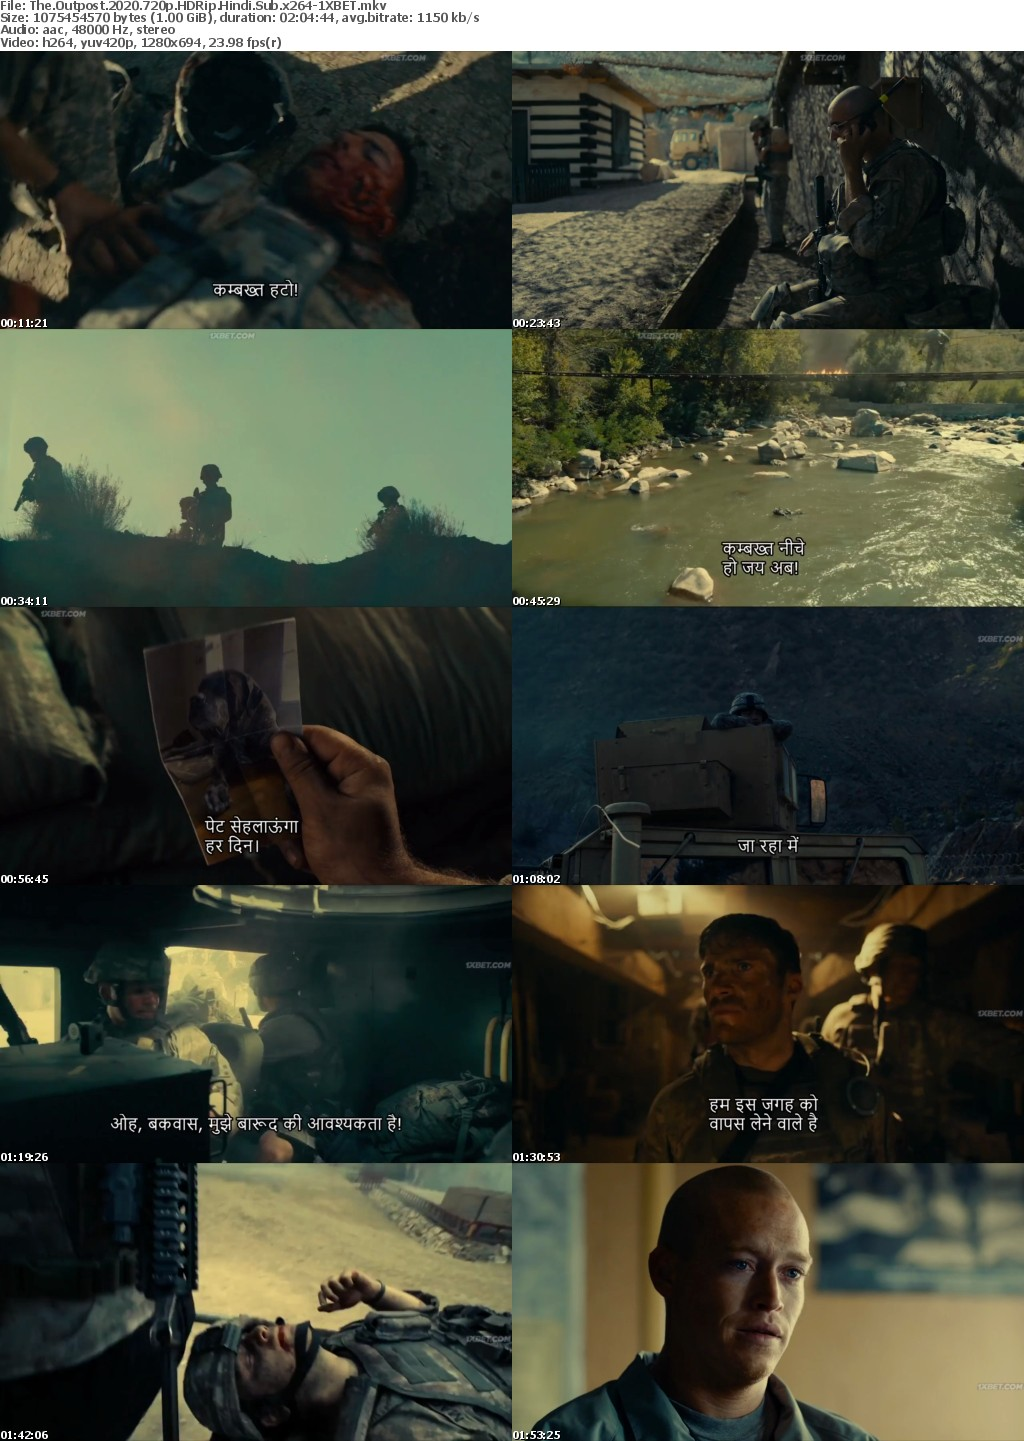 The Outpost (2020) HDRip 720p Hindi-Sub x264 - 1XBET